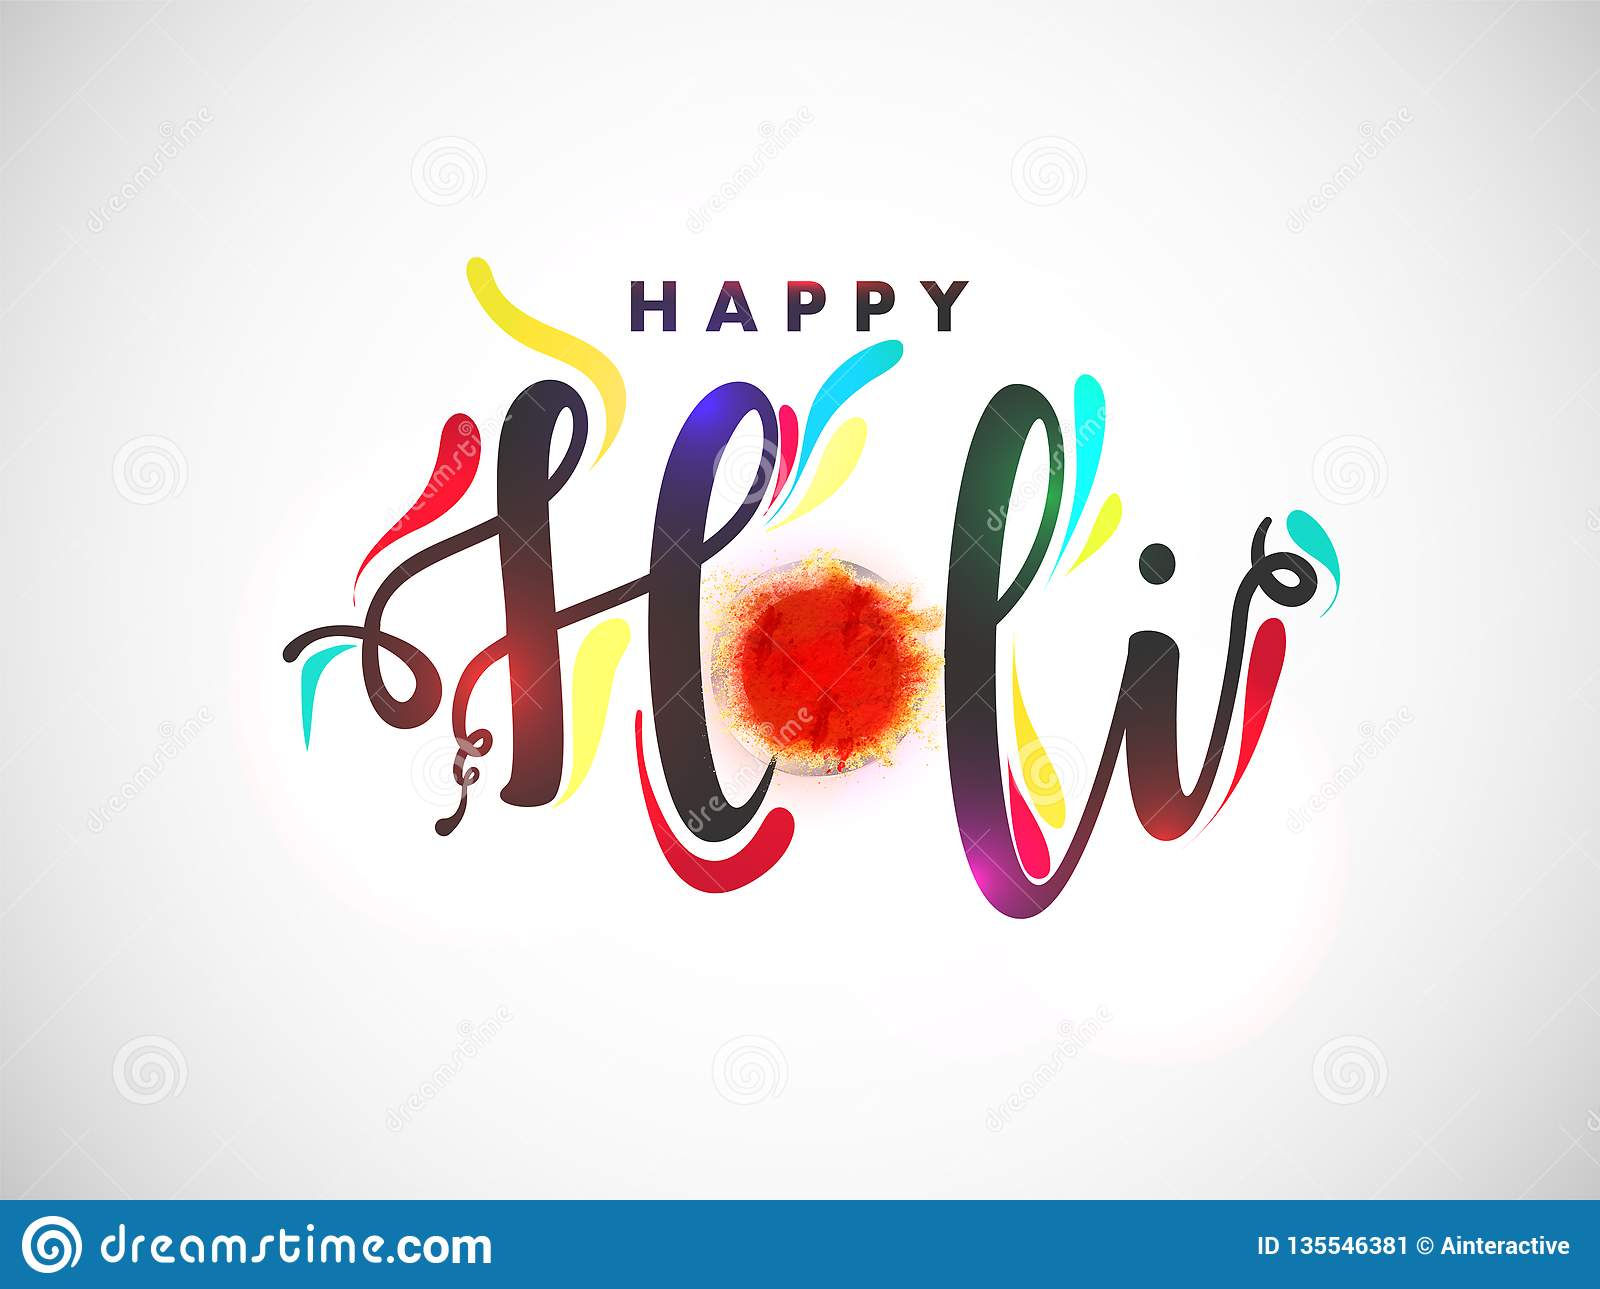 Stylish text Happy Holi with bowl full of dry colours on white background.